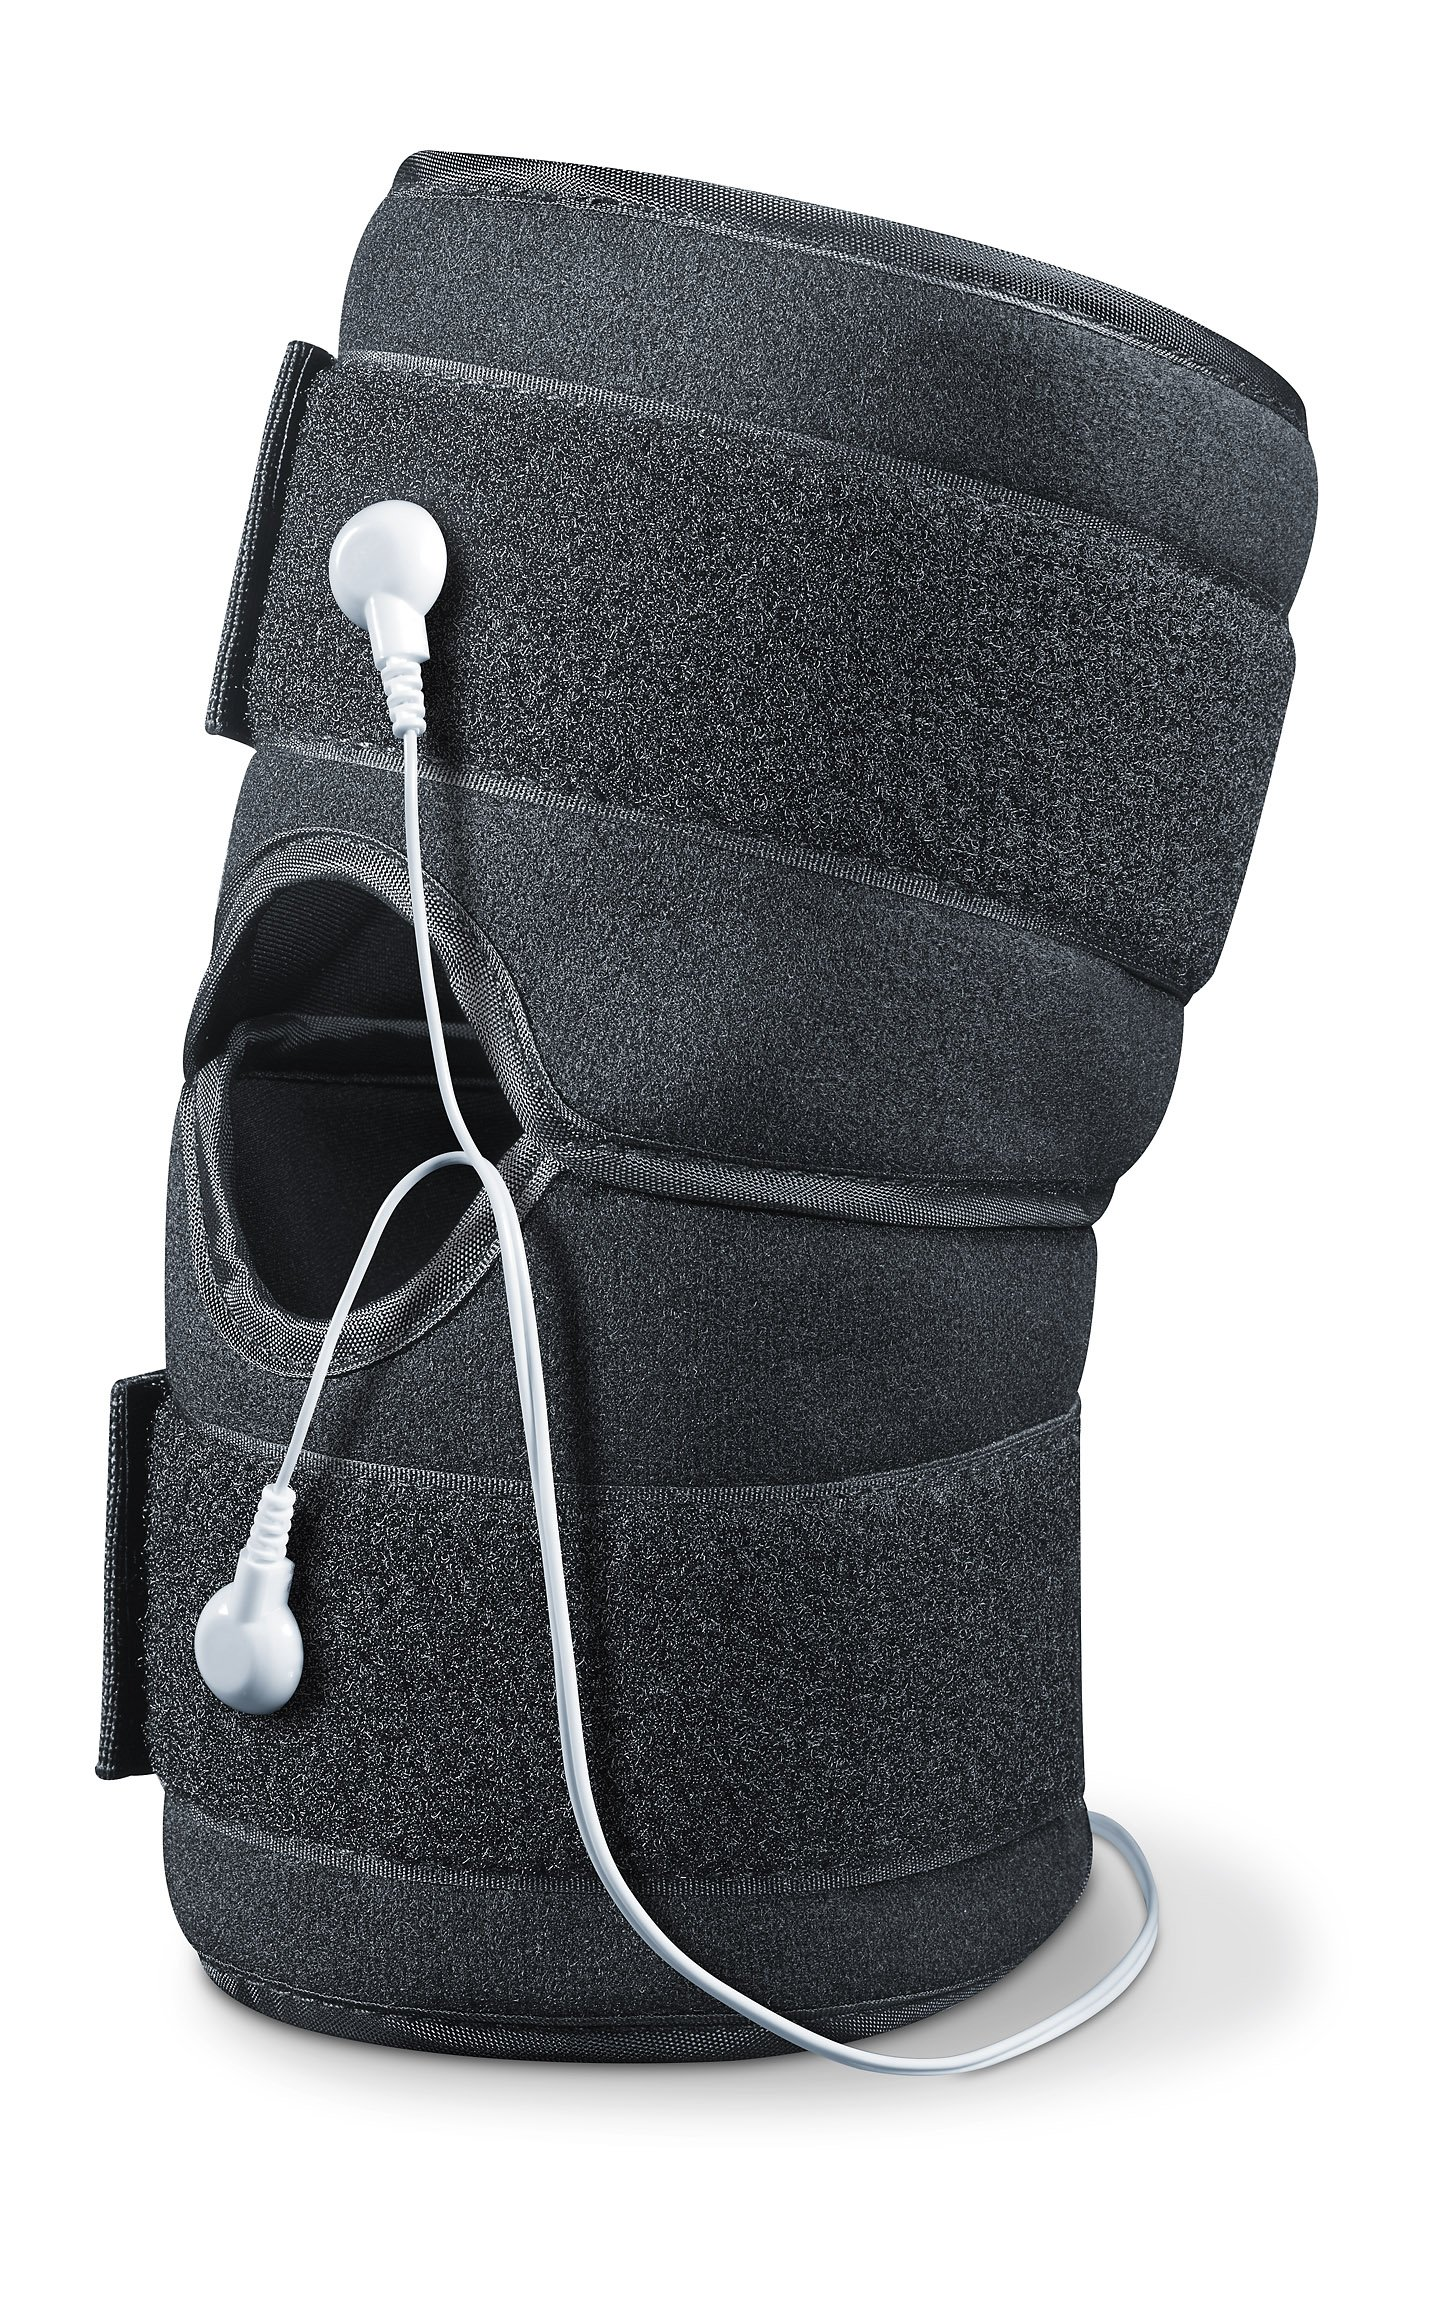 Beurer 2-in-1 Electrostimulation Tens Device with Knee and Elbow Universal Cuff, EM34